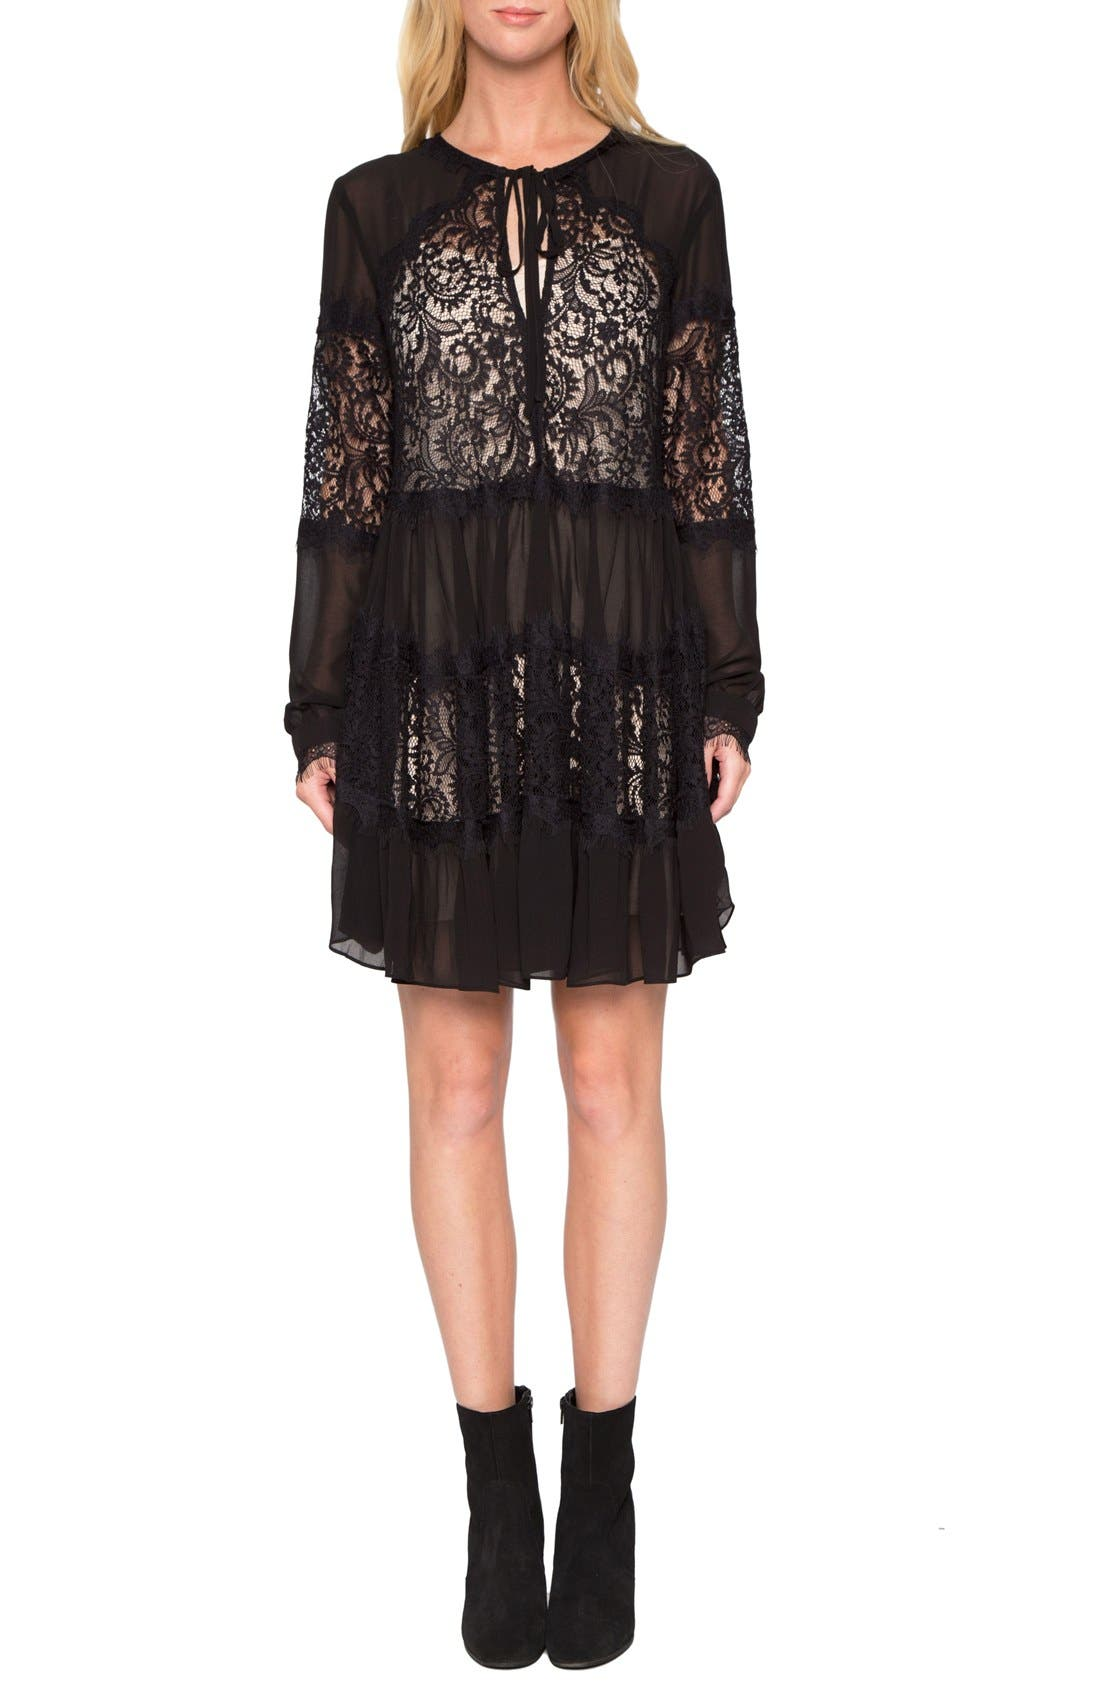 Alternate Image 1 Selected - Willow & Clay Lace Inset Fit & Flare Dress